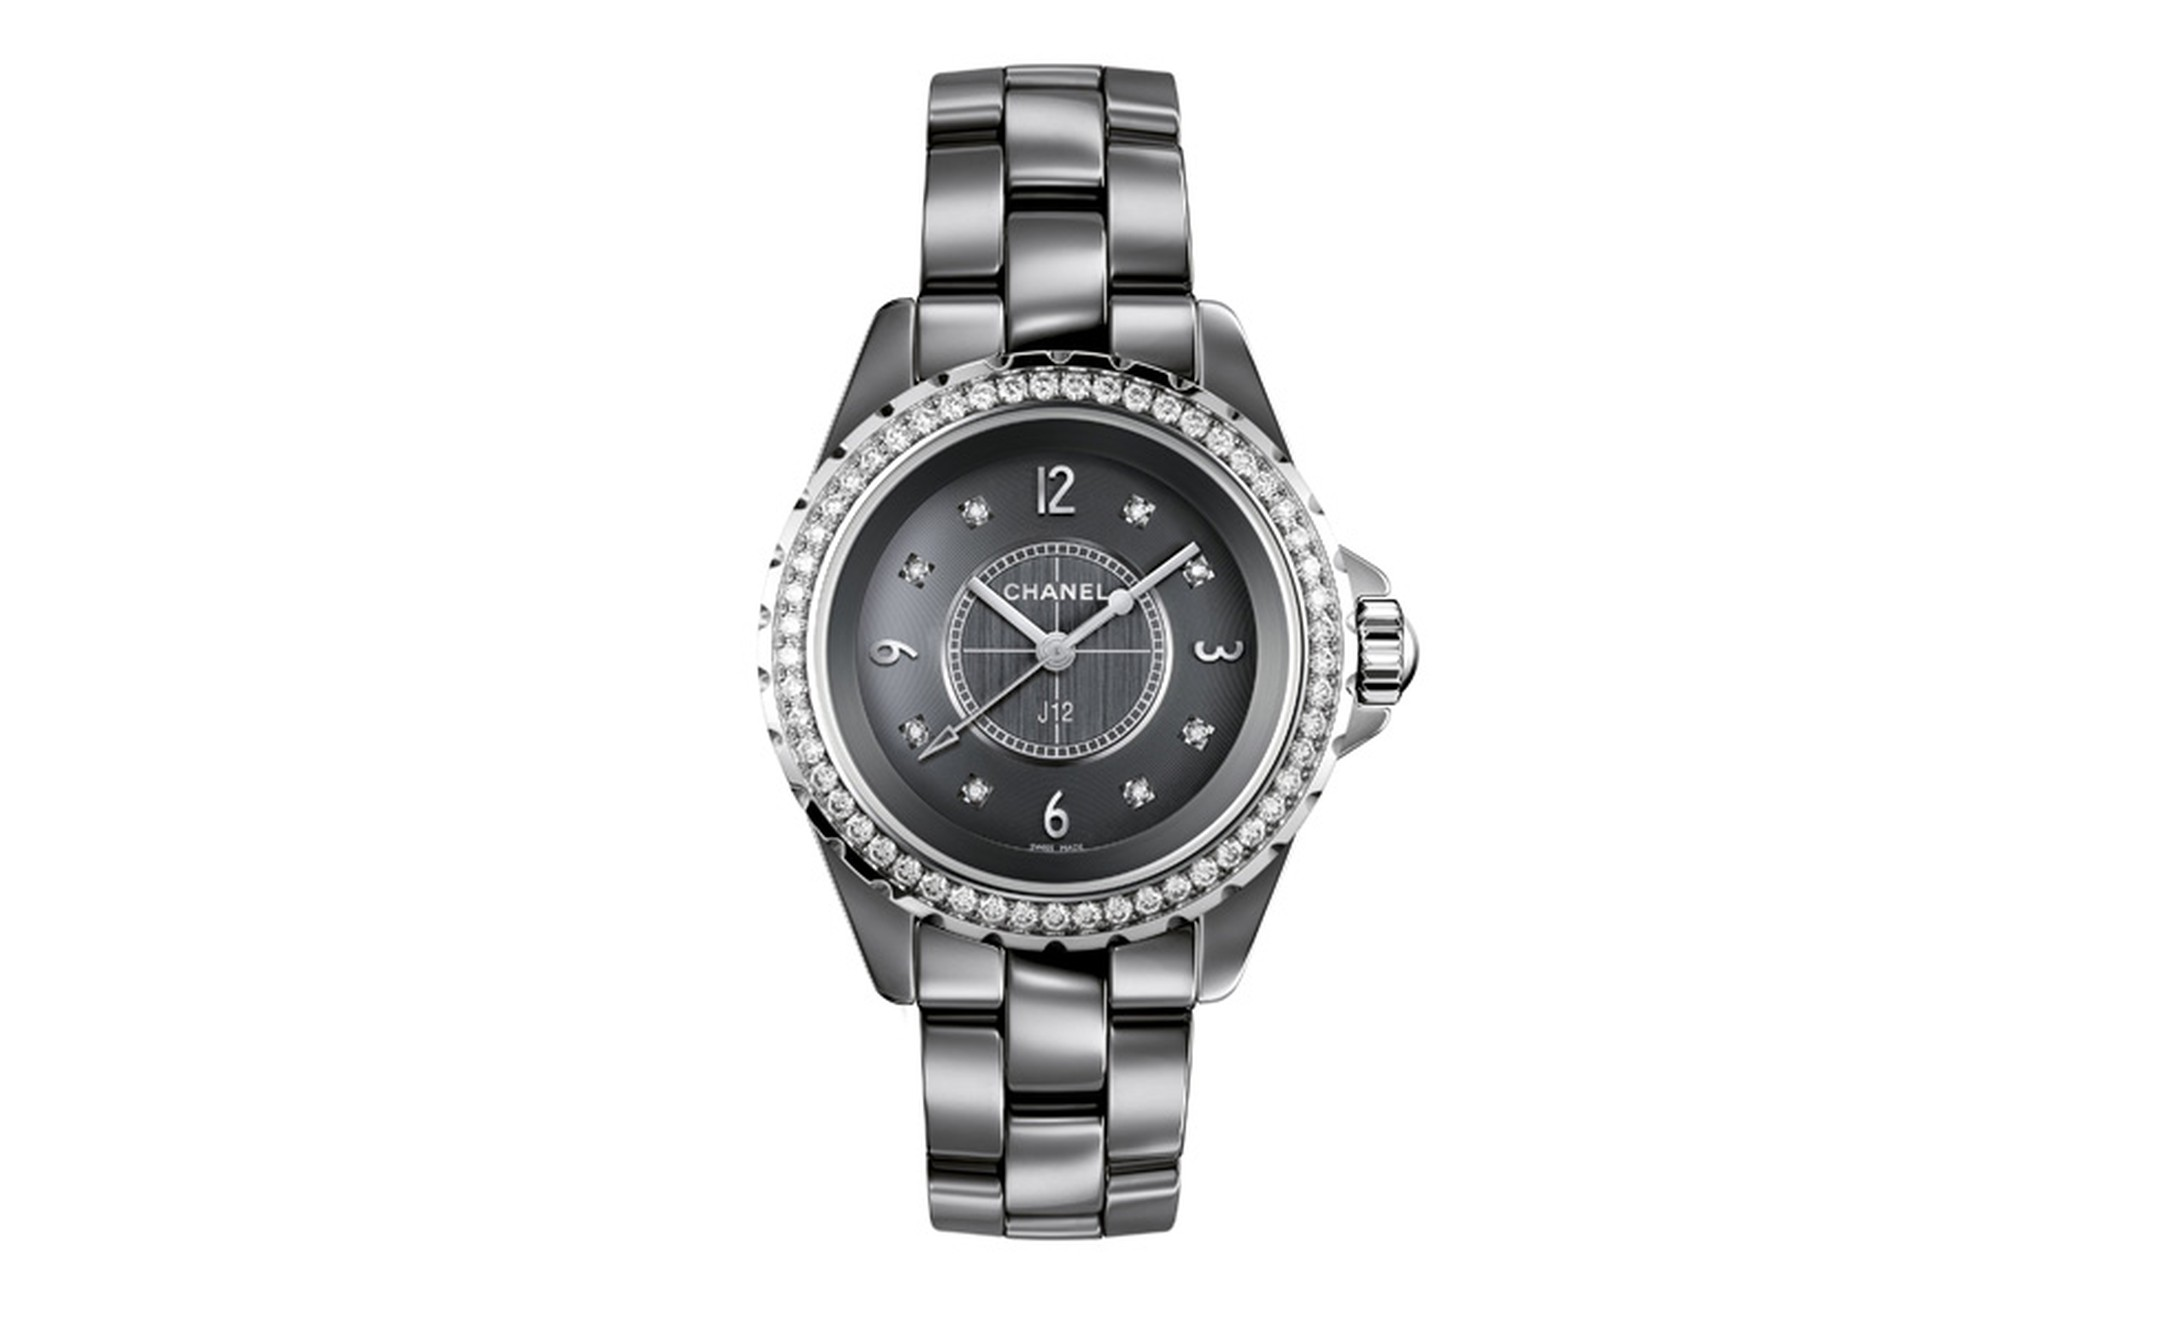 Chanel J12 Chromatic watch in titanium ceramic. 53 diamonds. Dial set with 8 diamond indicators. High-precision quartz movement. Functions: hours, minutes, seconds. Water-resistance : 50 meters. 33mm diameter